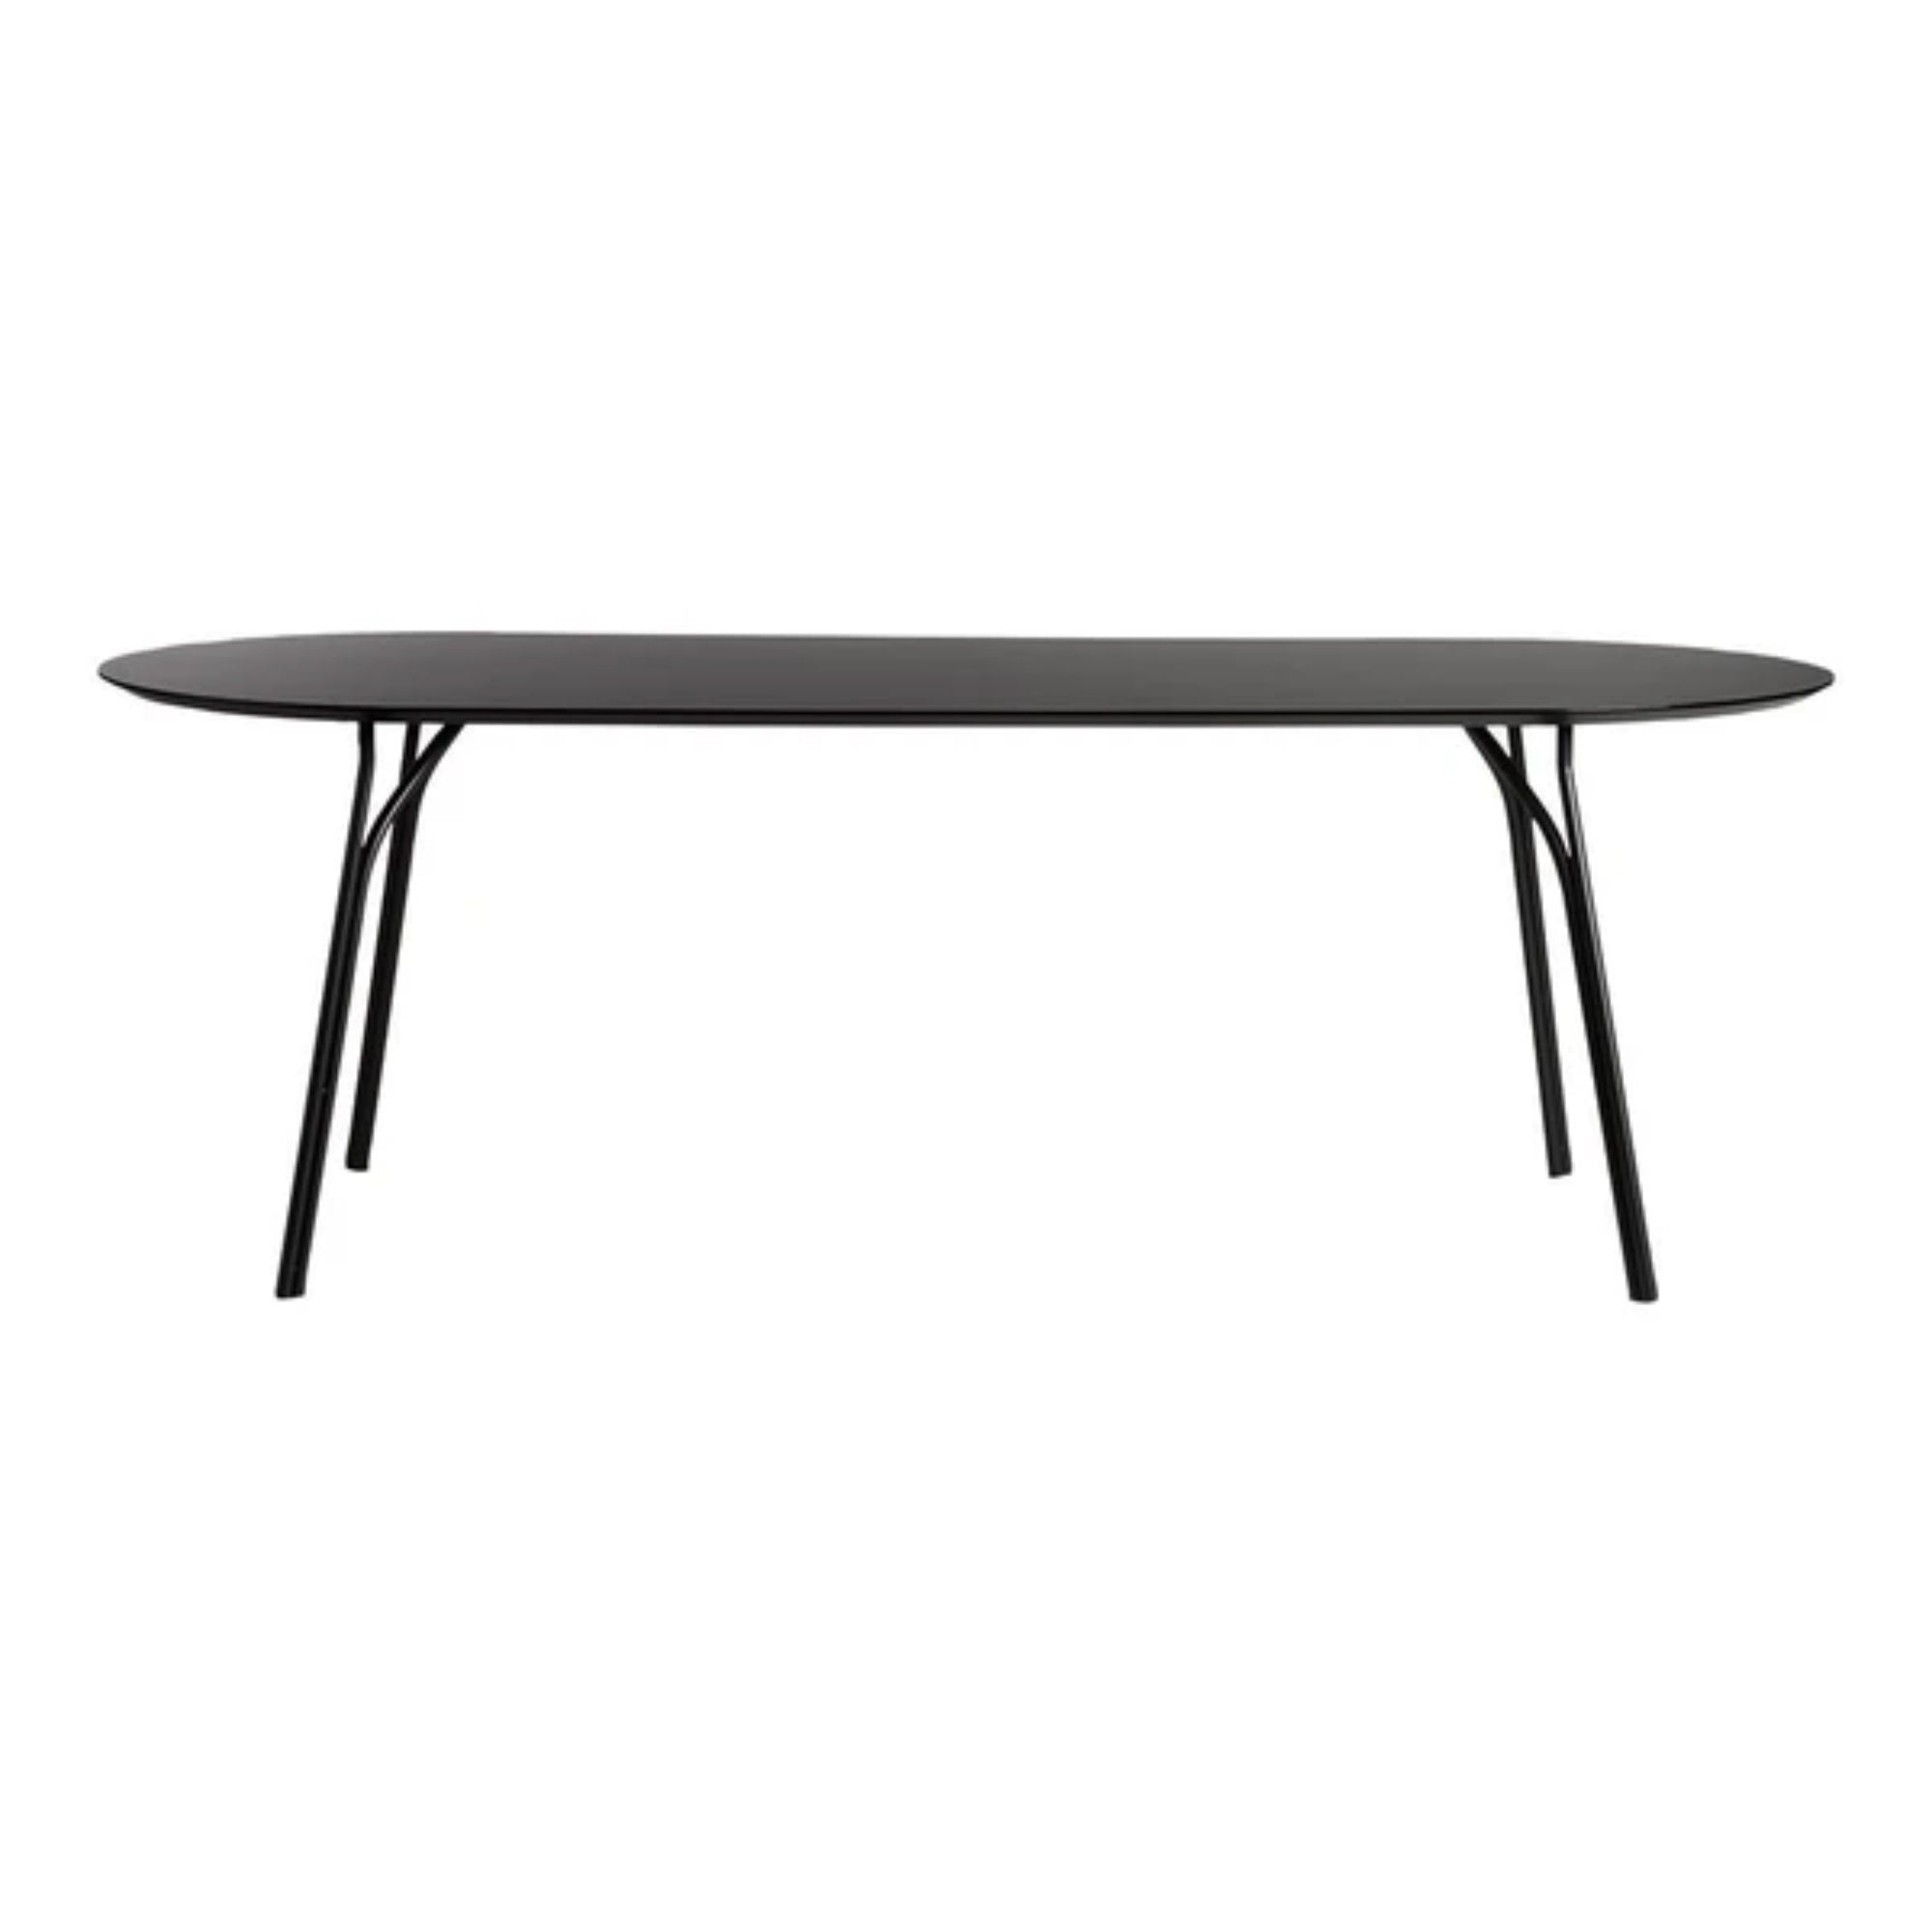 Woud Tree Dining Table 90x220cm , Black Top-Black Legs